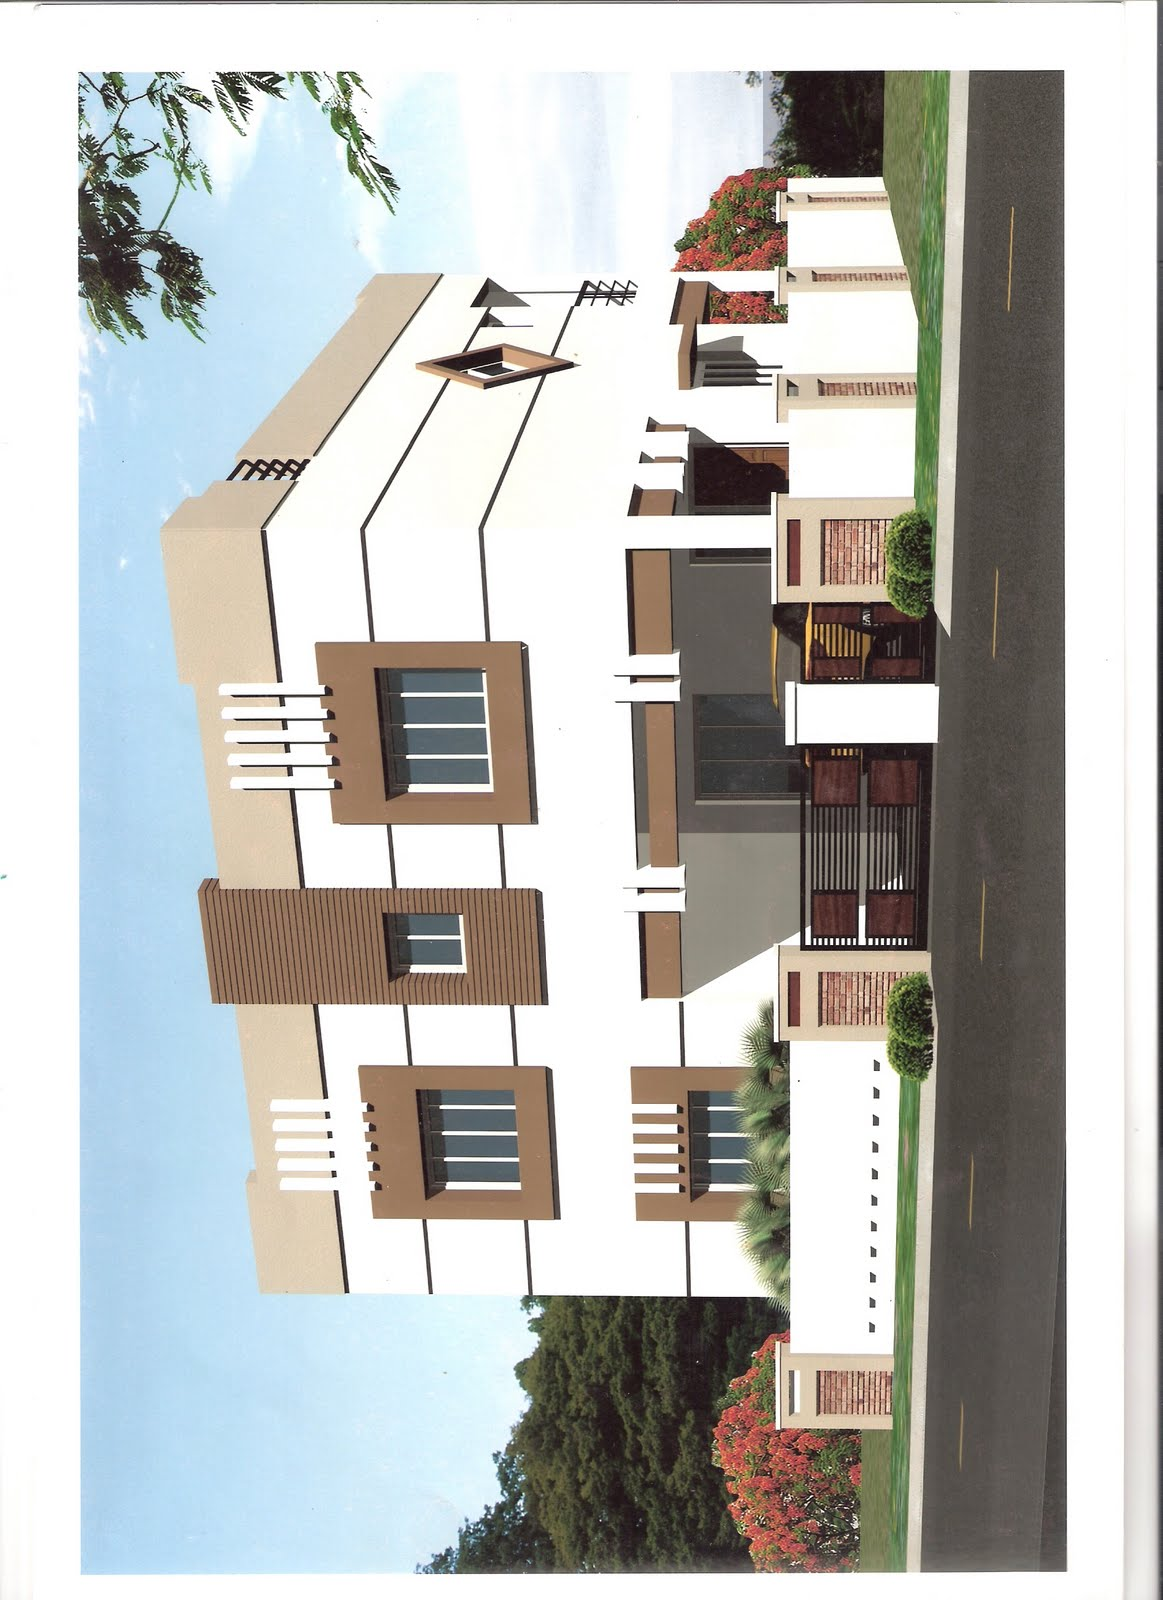 Building Elevation Design